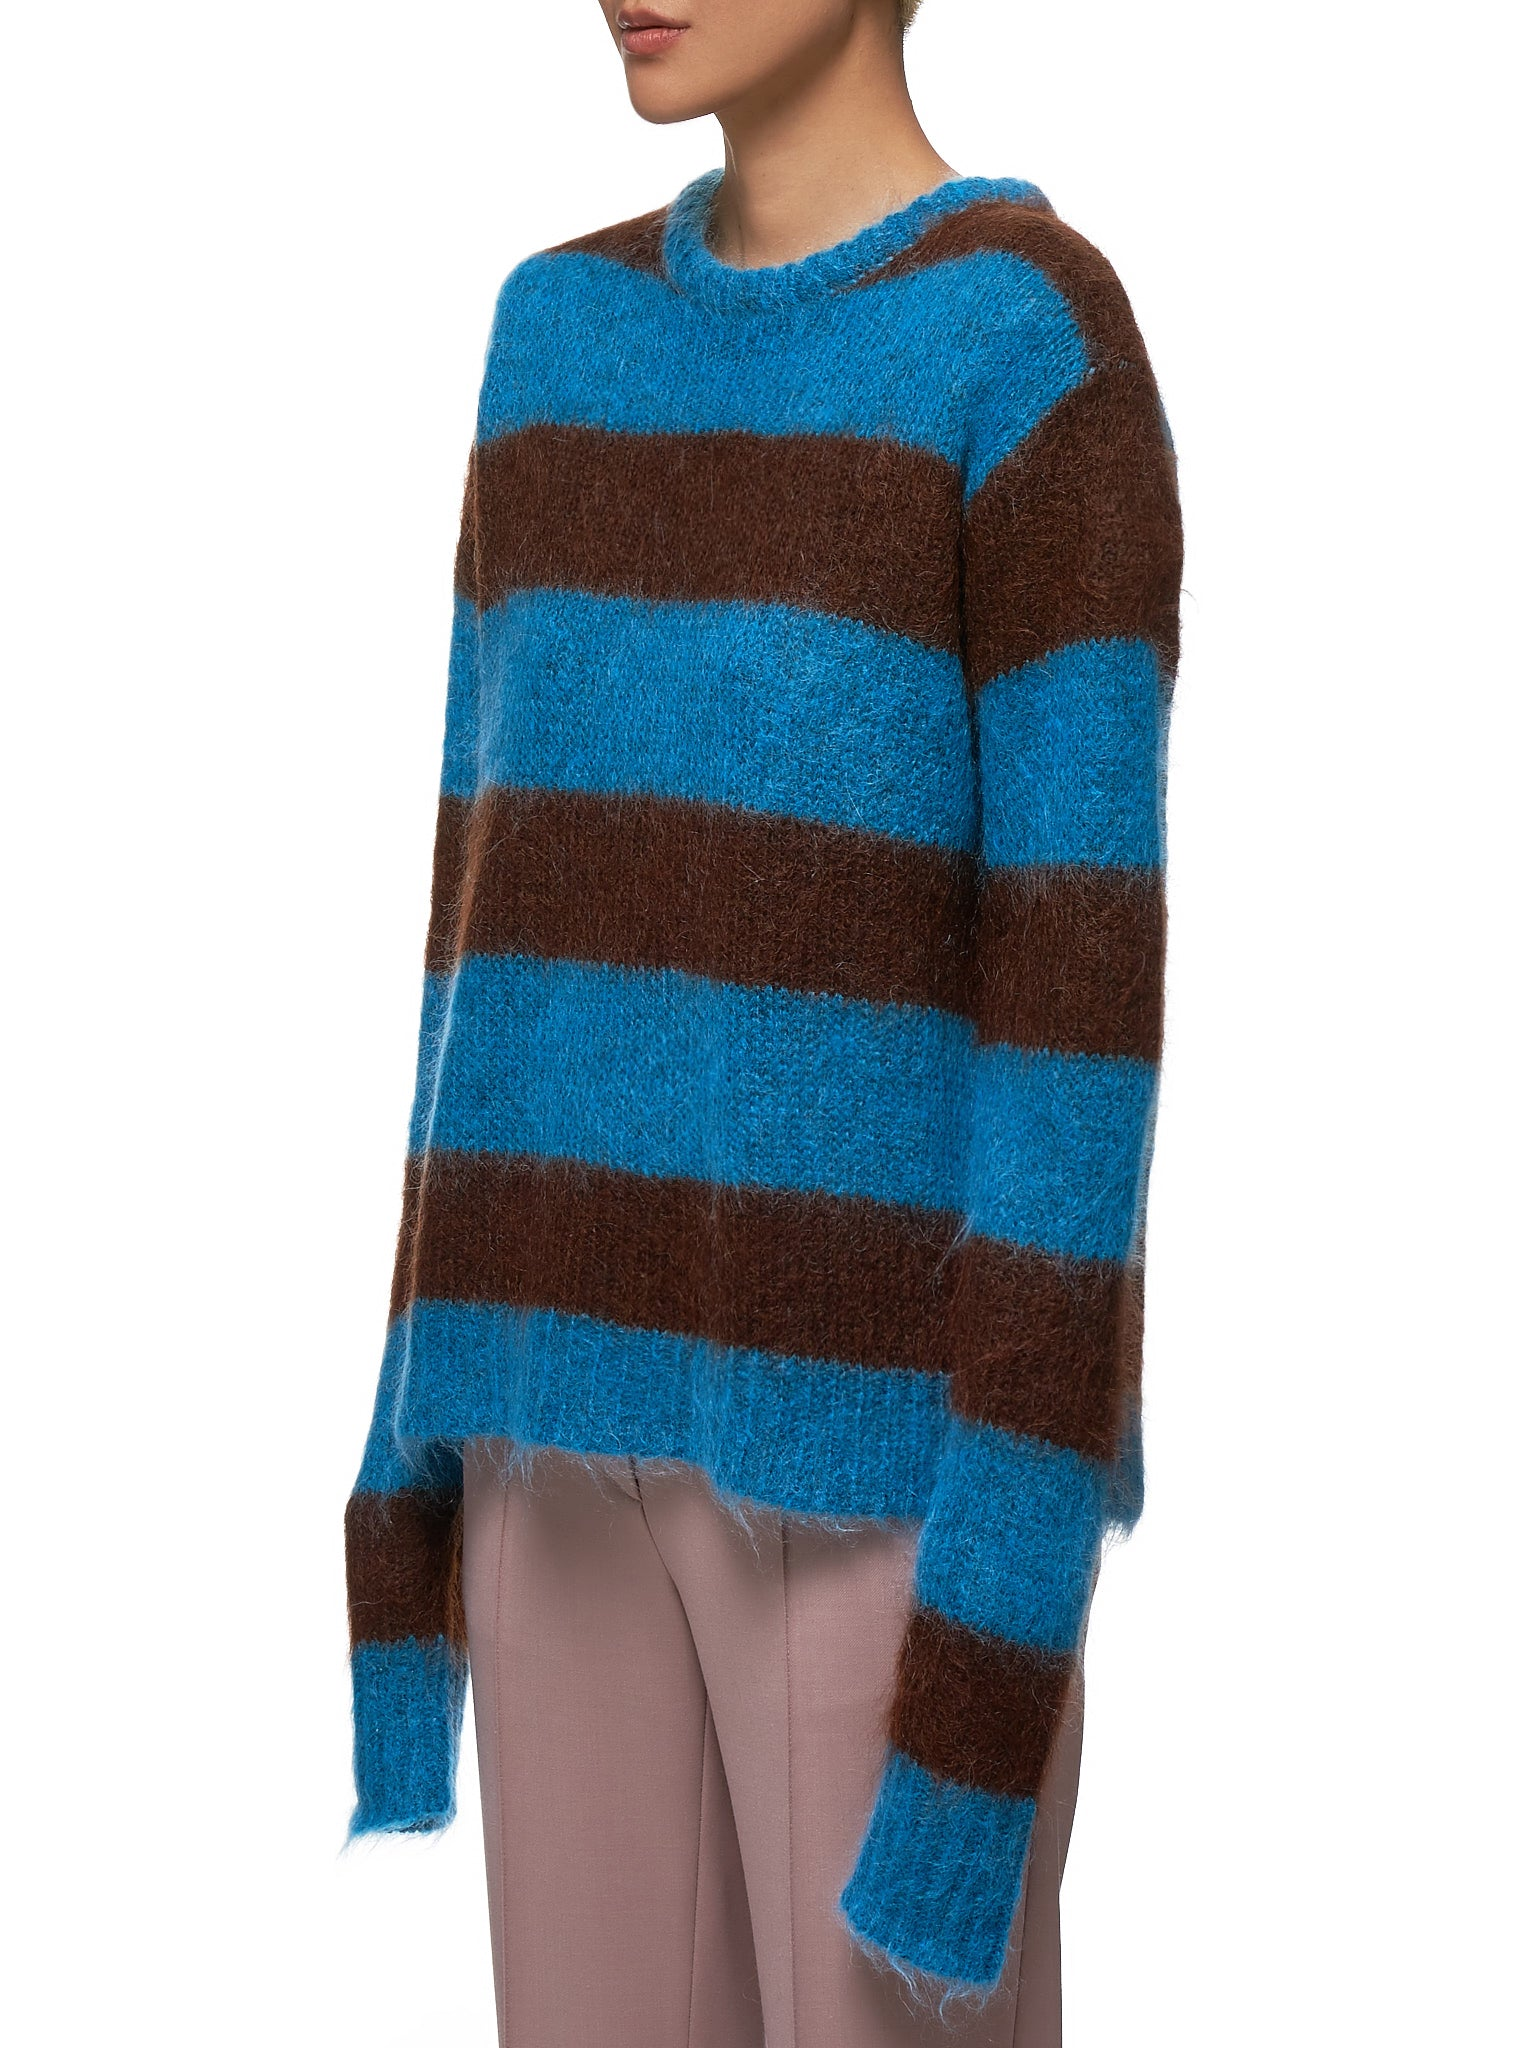 Chunky Mohair Sweater (R3CA16-MH-TURQUIOSE-COMBO)